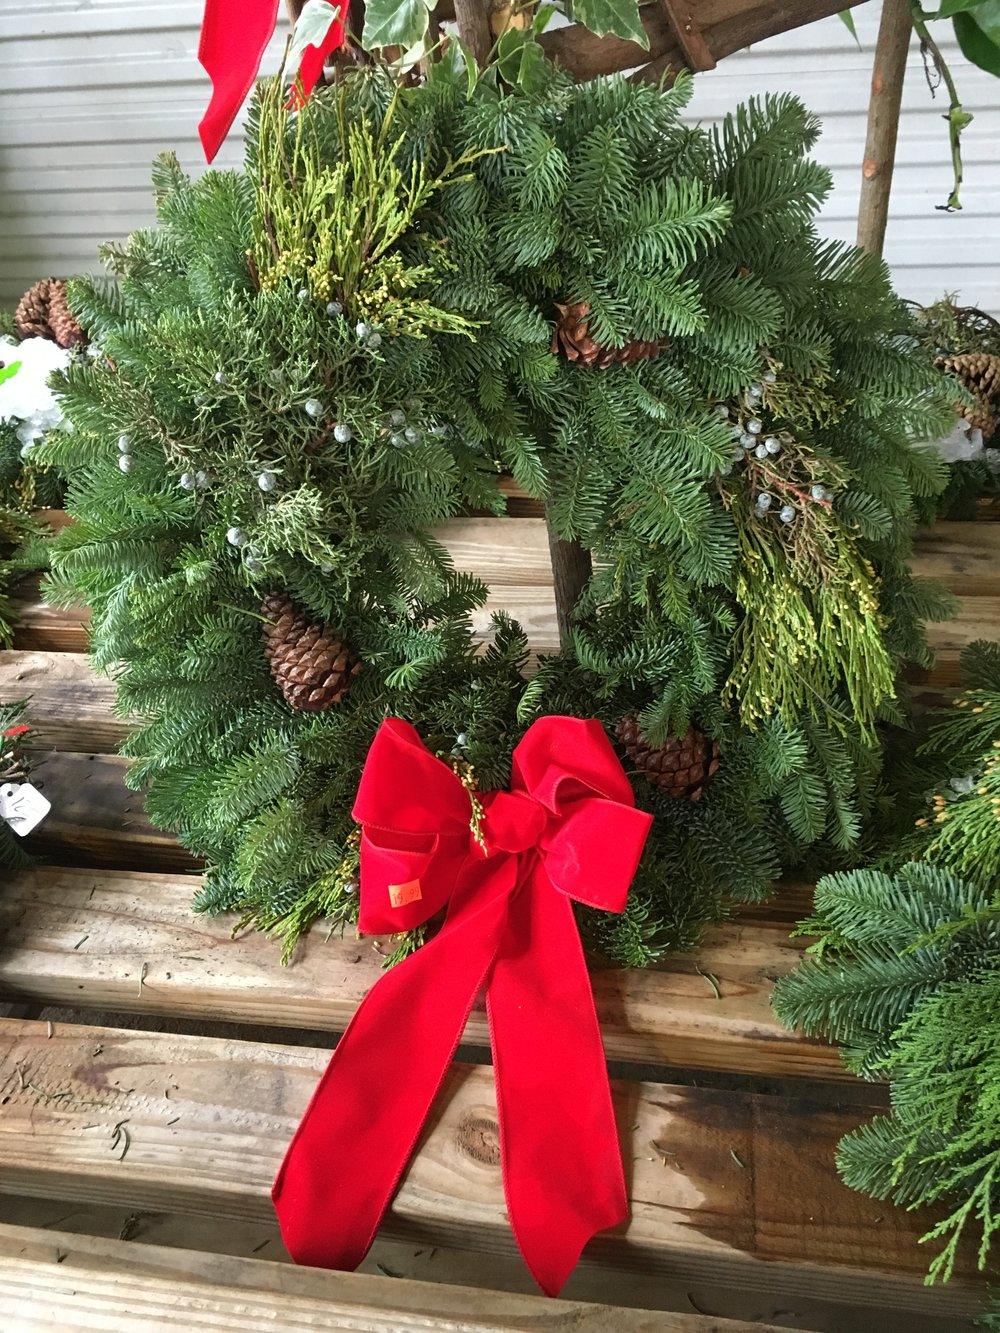 The only problem with these wreaths is having to pick which one to get!